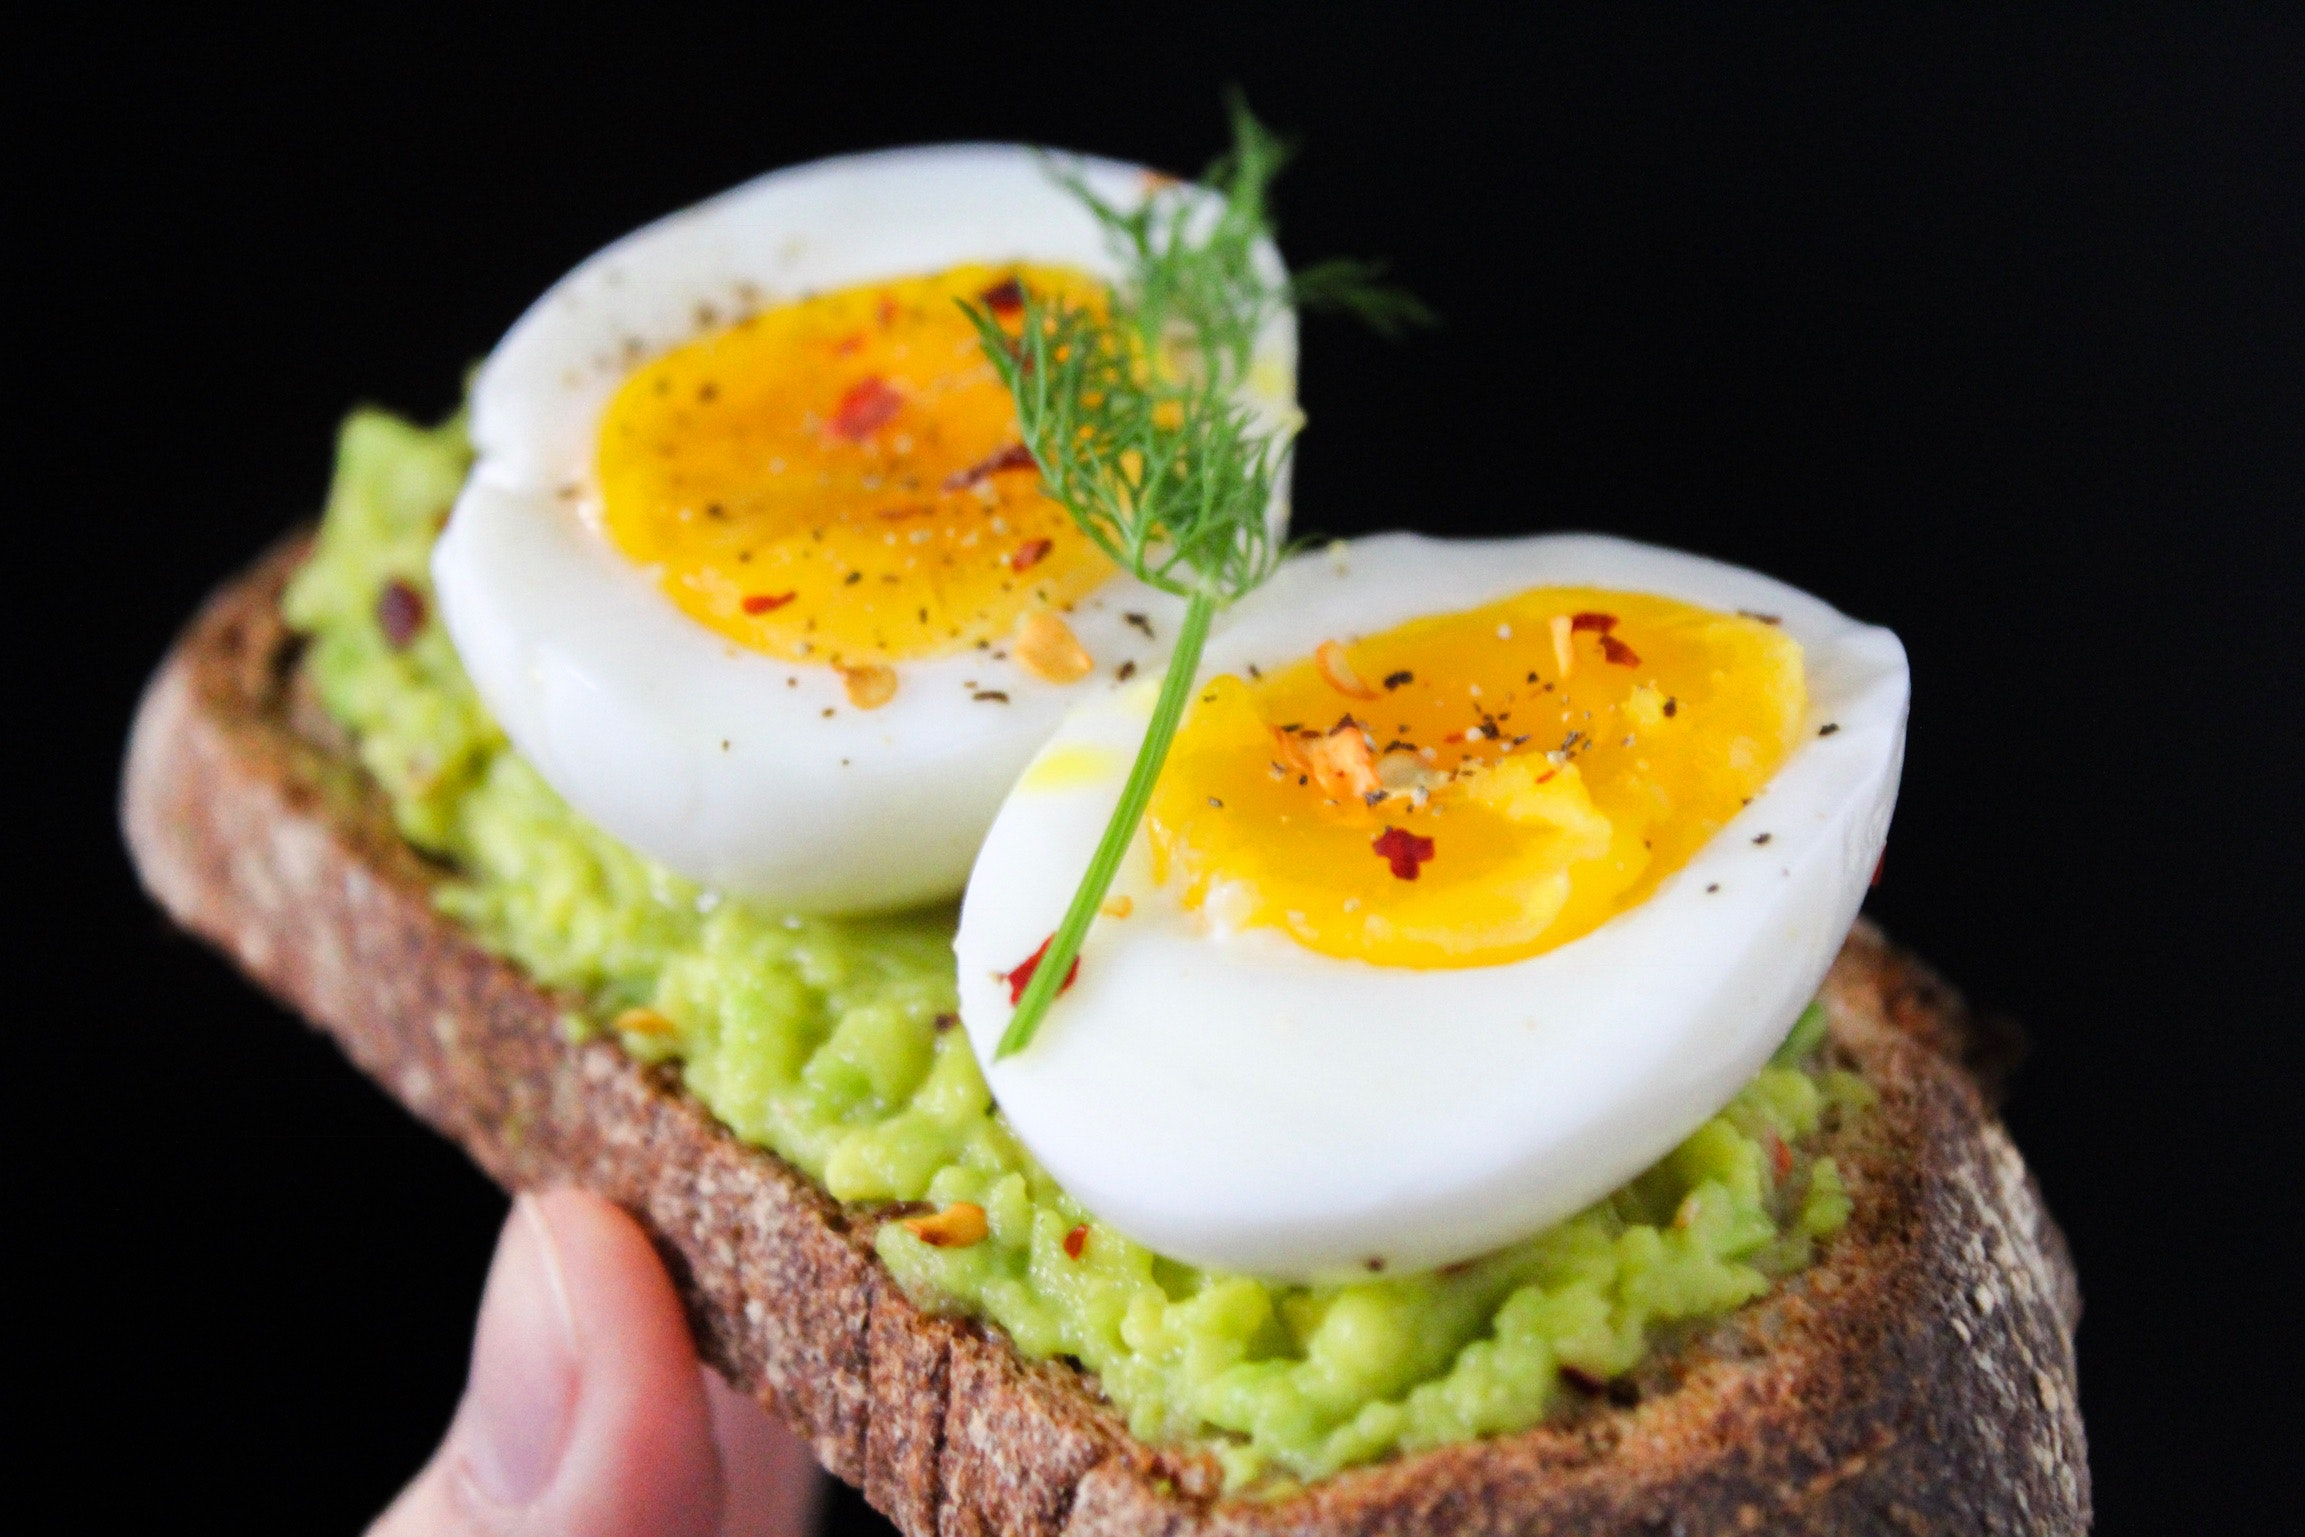 Sliced egg on top of green salad with bread photo